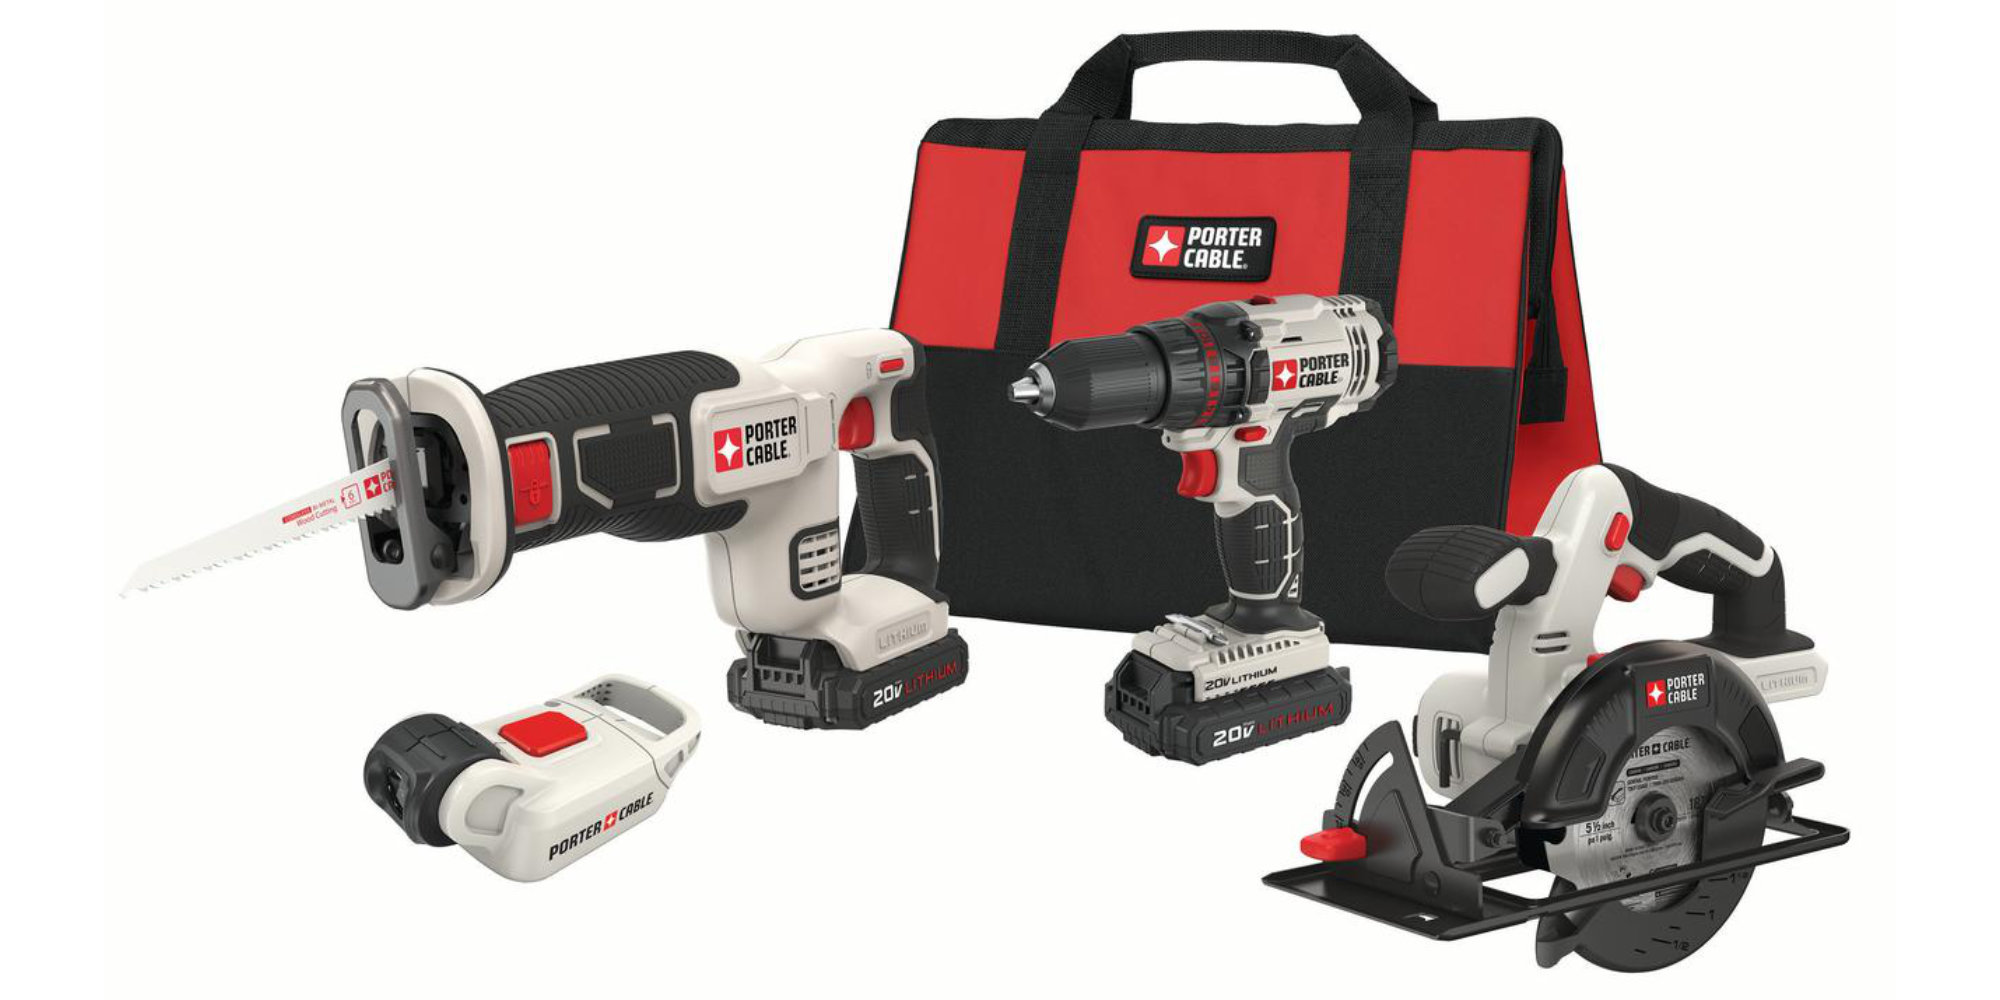 This Porter Cable 4-Tool Combo Kit is back at its all-time low of $129 shipped (Reg. $179)